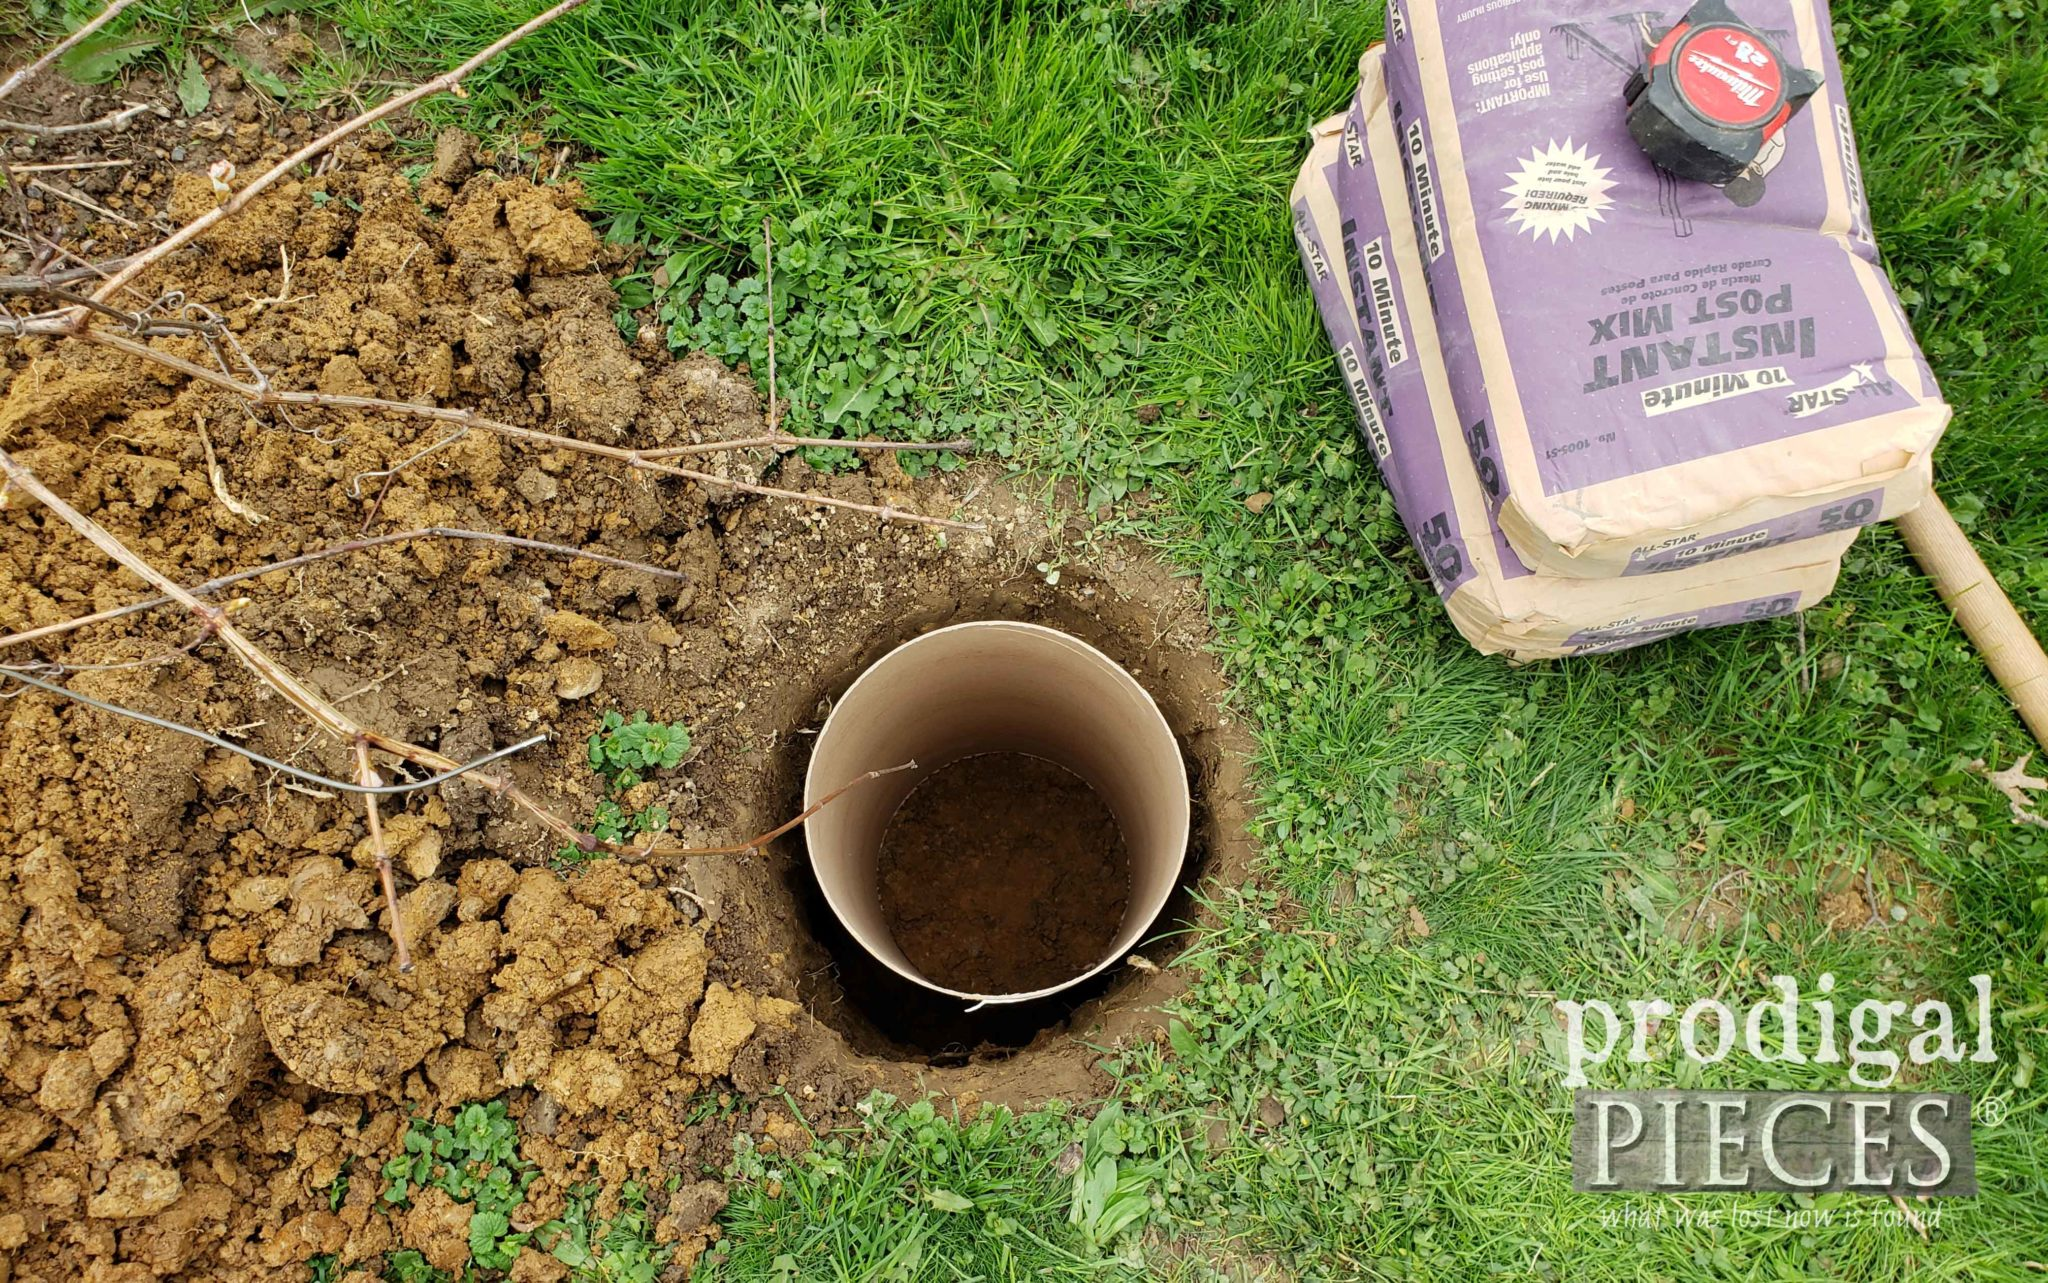 Grape Arbor Post Hole with Reinforced Base | prodigalpieces.com #prodigalpieces #diy #garden